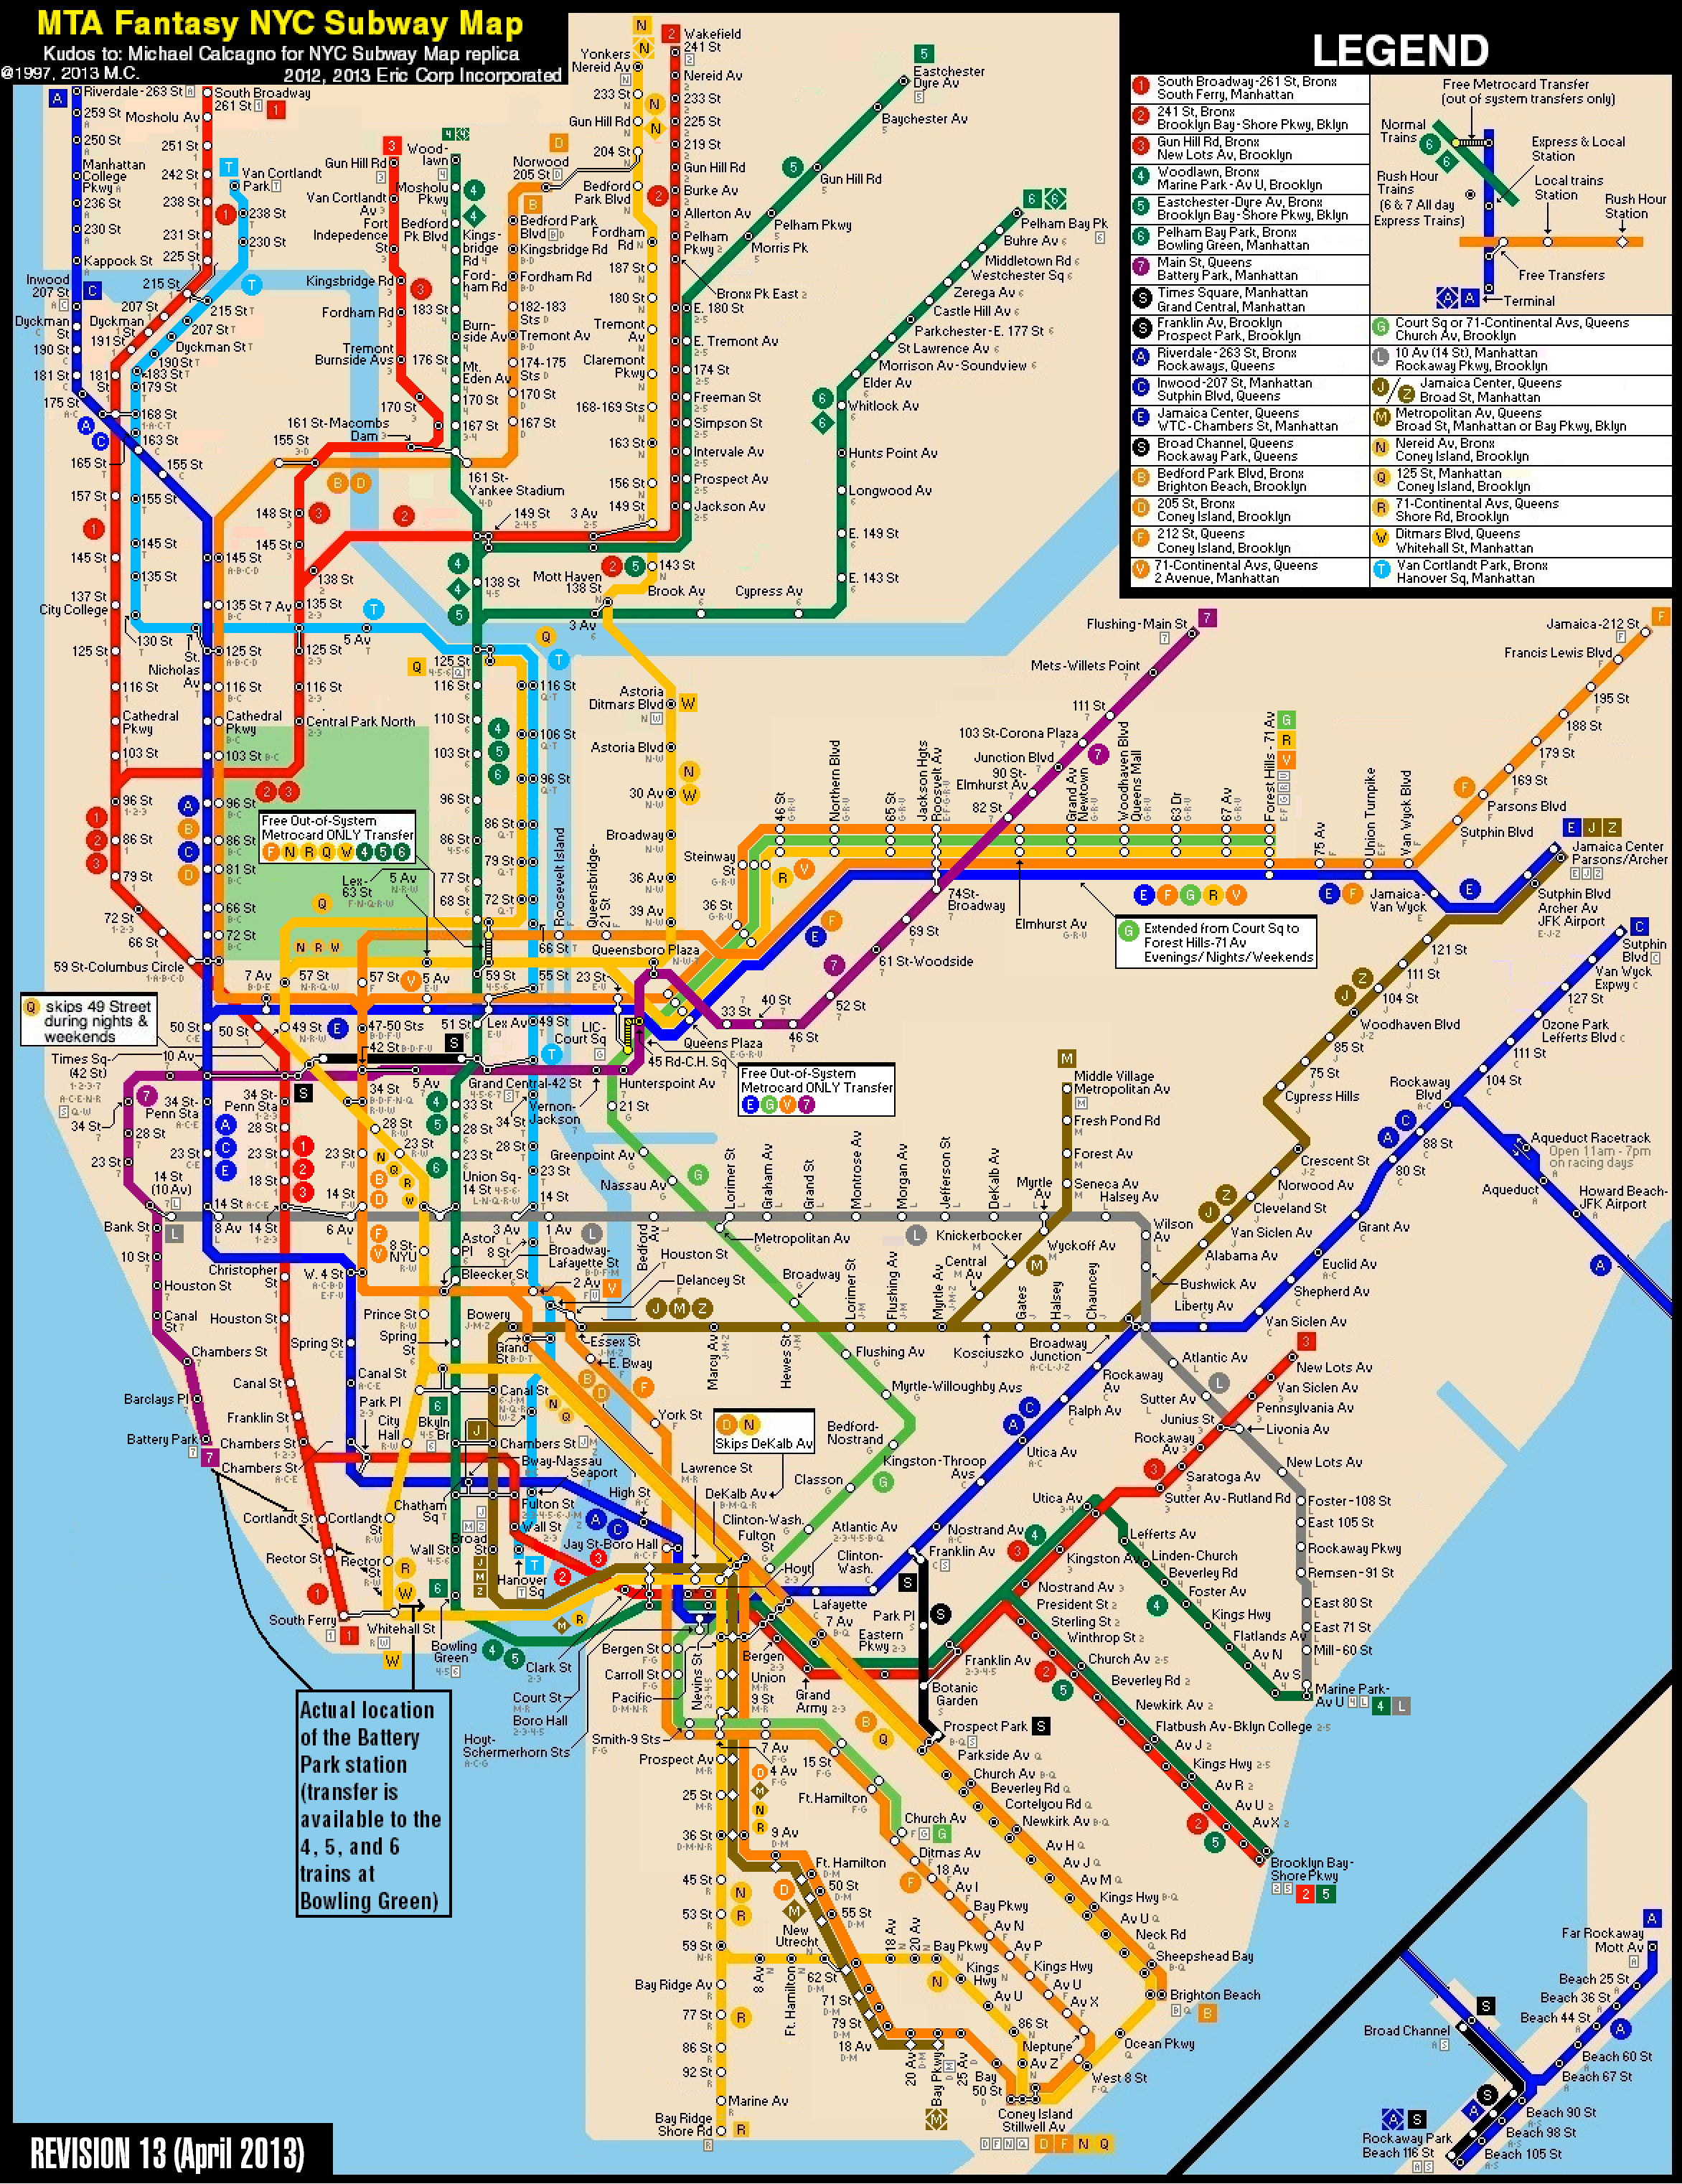 Latest Nyc Subway Map.New York Subway Map New York City Subway Fantasy Map Revision 13